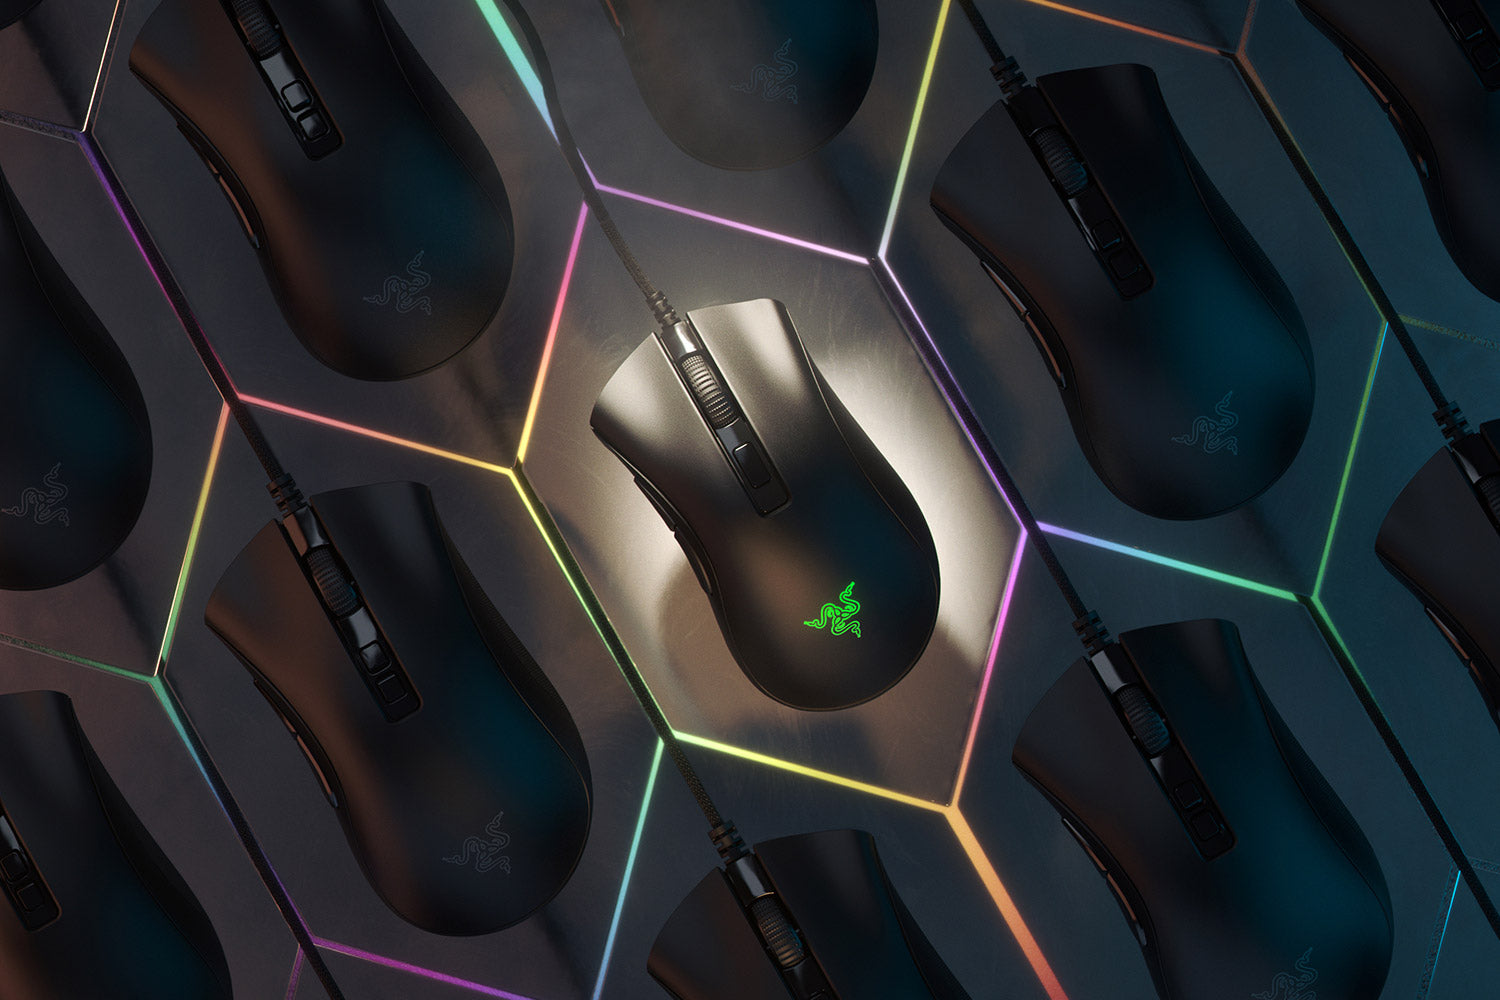 Razer Deathadder V2 Mini Gaming Mouse - World's Best Gaming Mouse Now Mini